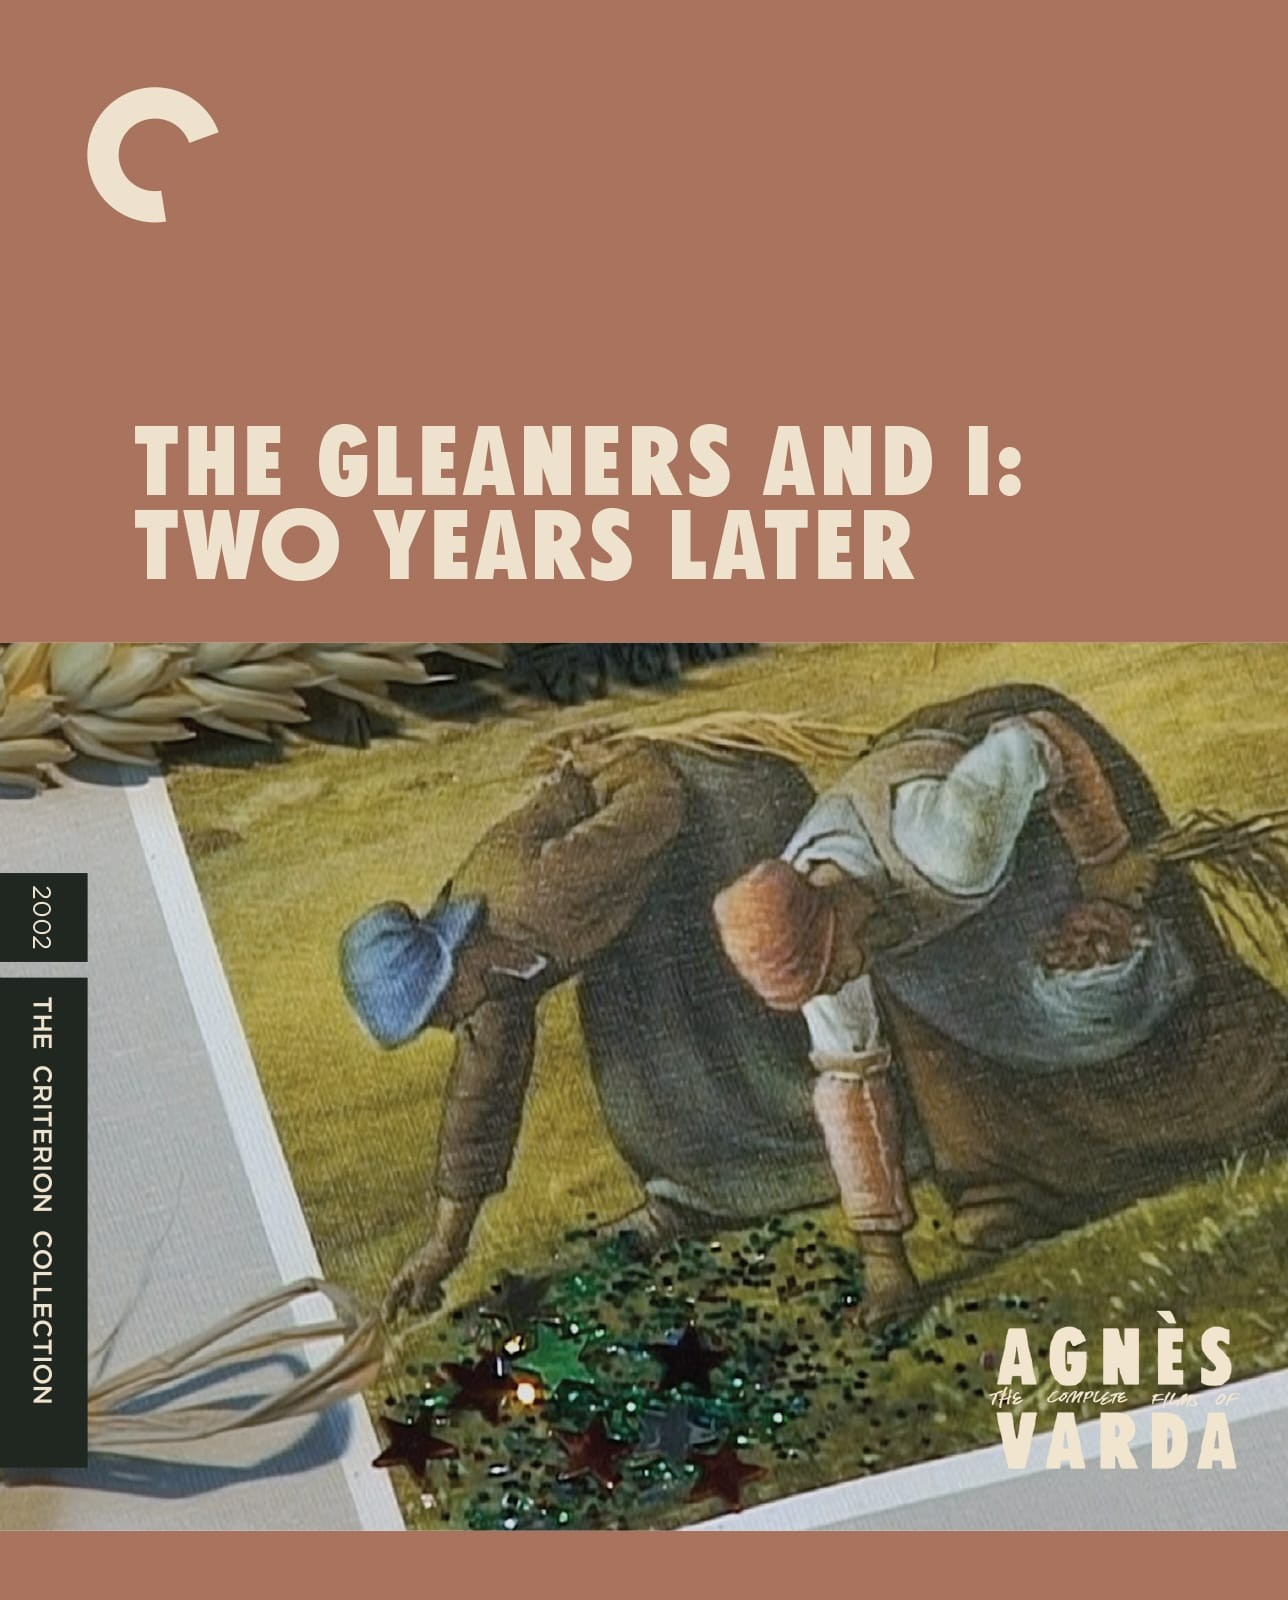 The Gleaners and I: Two Years Later (2002) | The Criterion Collection